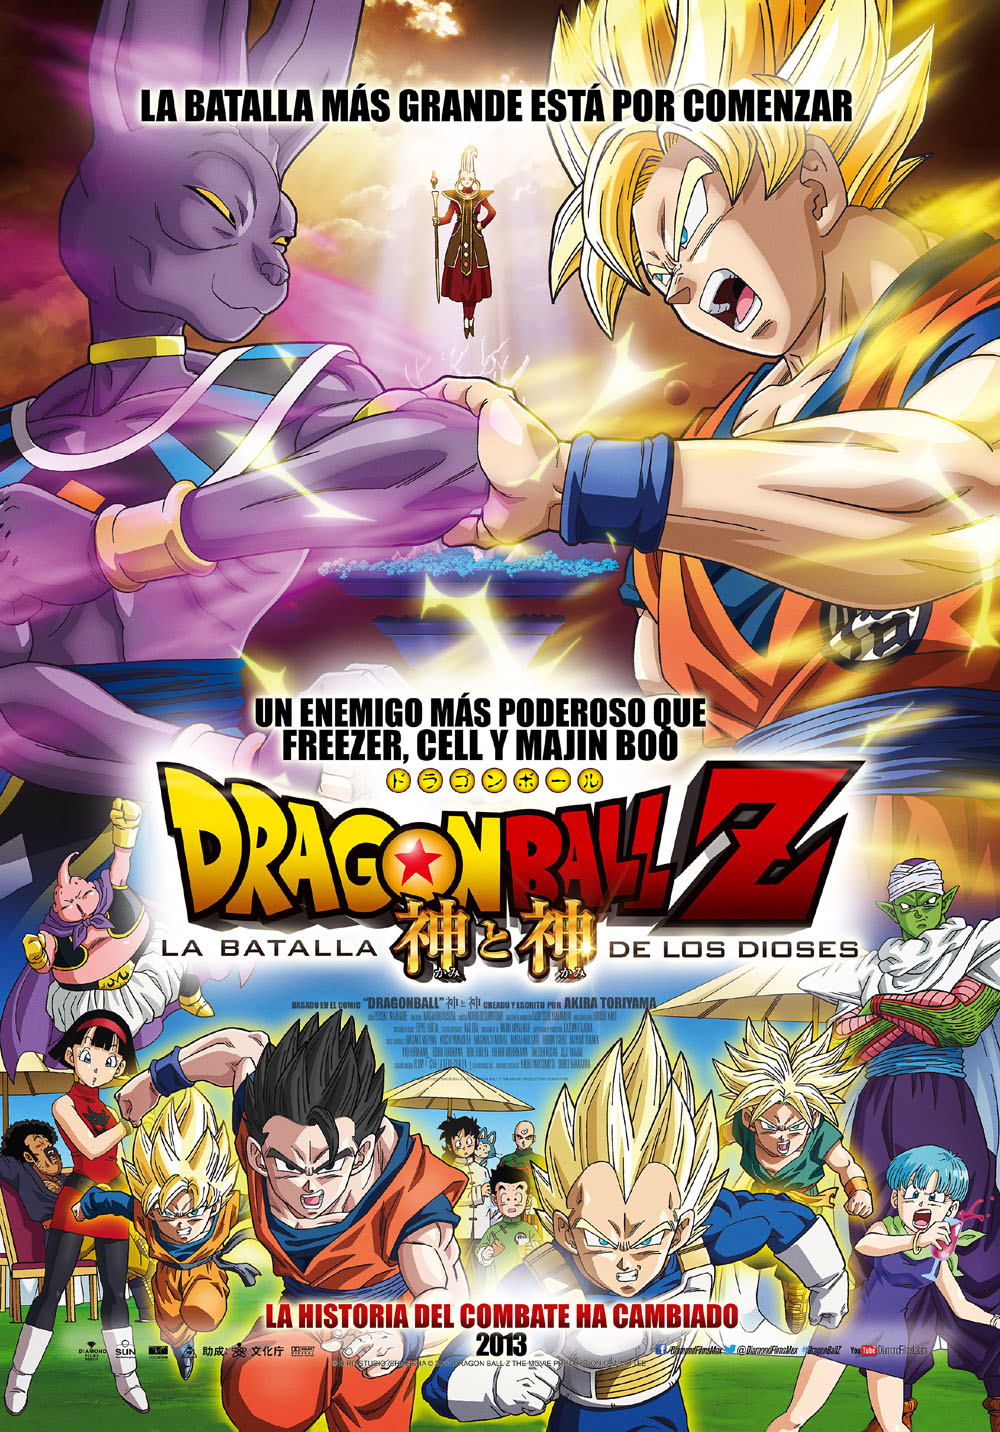 Dragon ball z la batalla de los dioses doblaje wiki for Chambre dragon ball z